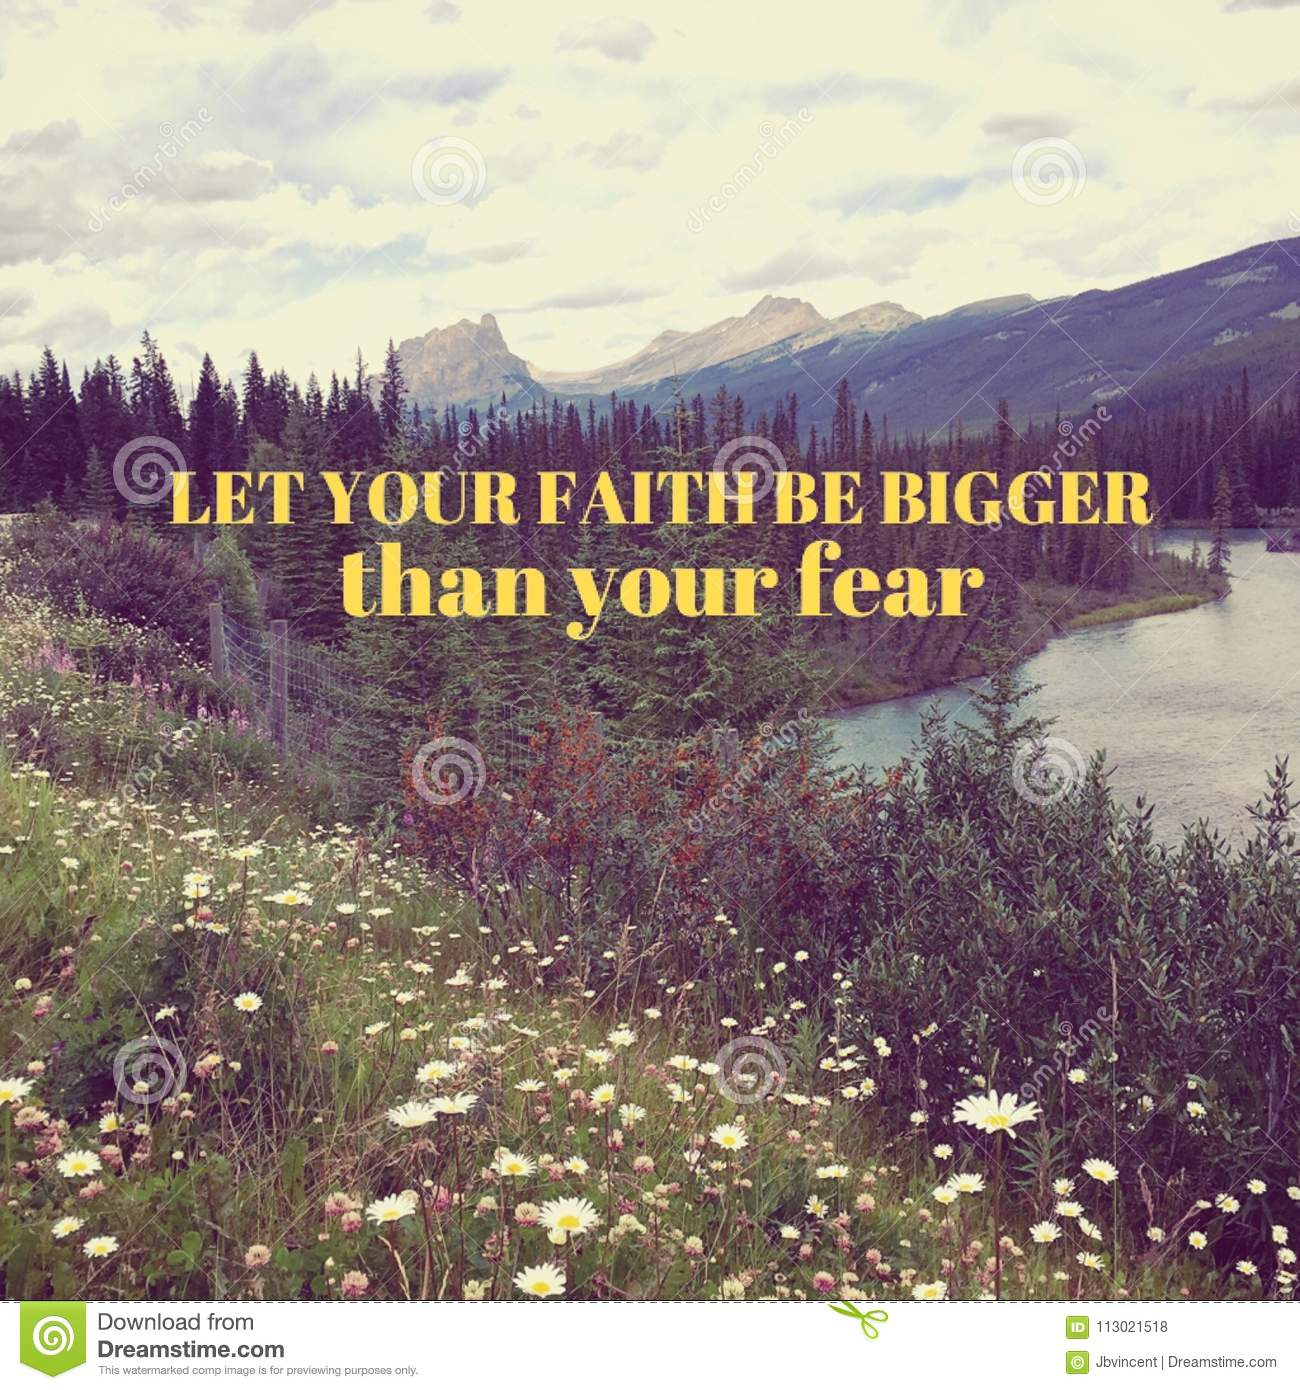 Download 8200 Koleksi Background View Quotes Gratis Terbaik